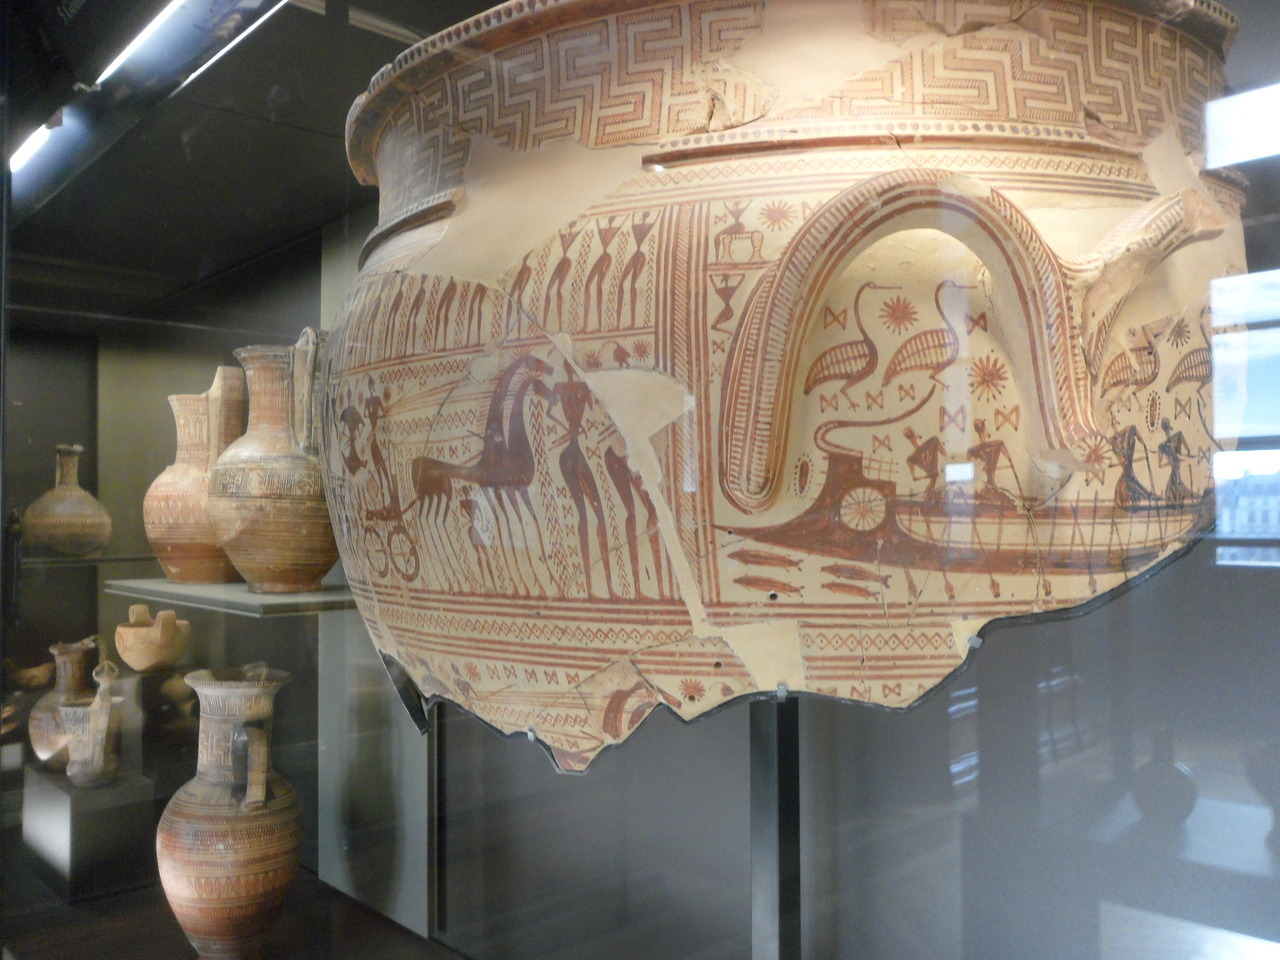 Fragmentary krater Late Geometric period (LG I), c. 750 BC Dipylon cemetery, Athens (Greece) Currently located at the Louvre, Paris. more information : http://www.louvre.fr/en/oeuvre-notices/fragmentary-krater Submitted by: eux-them